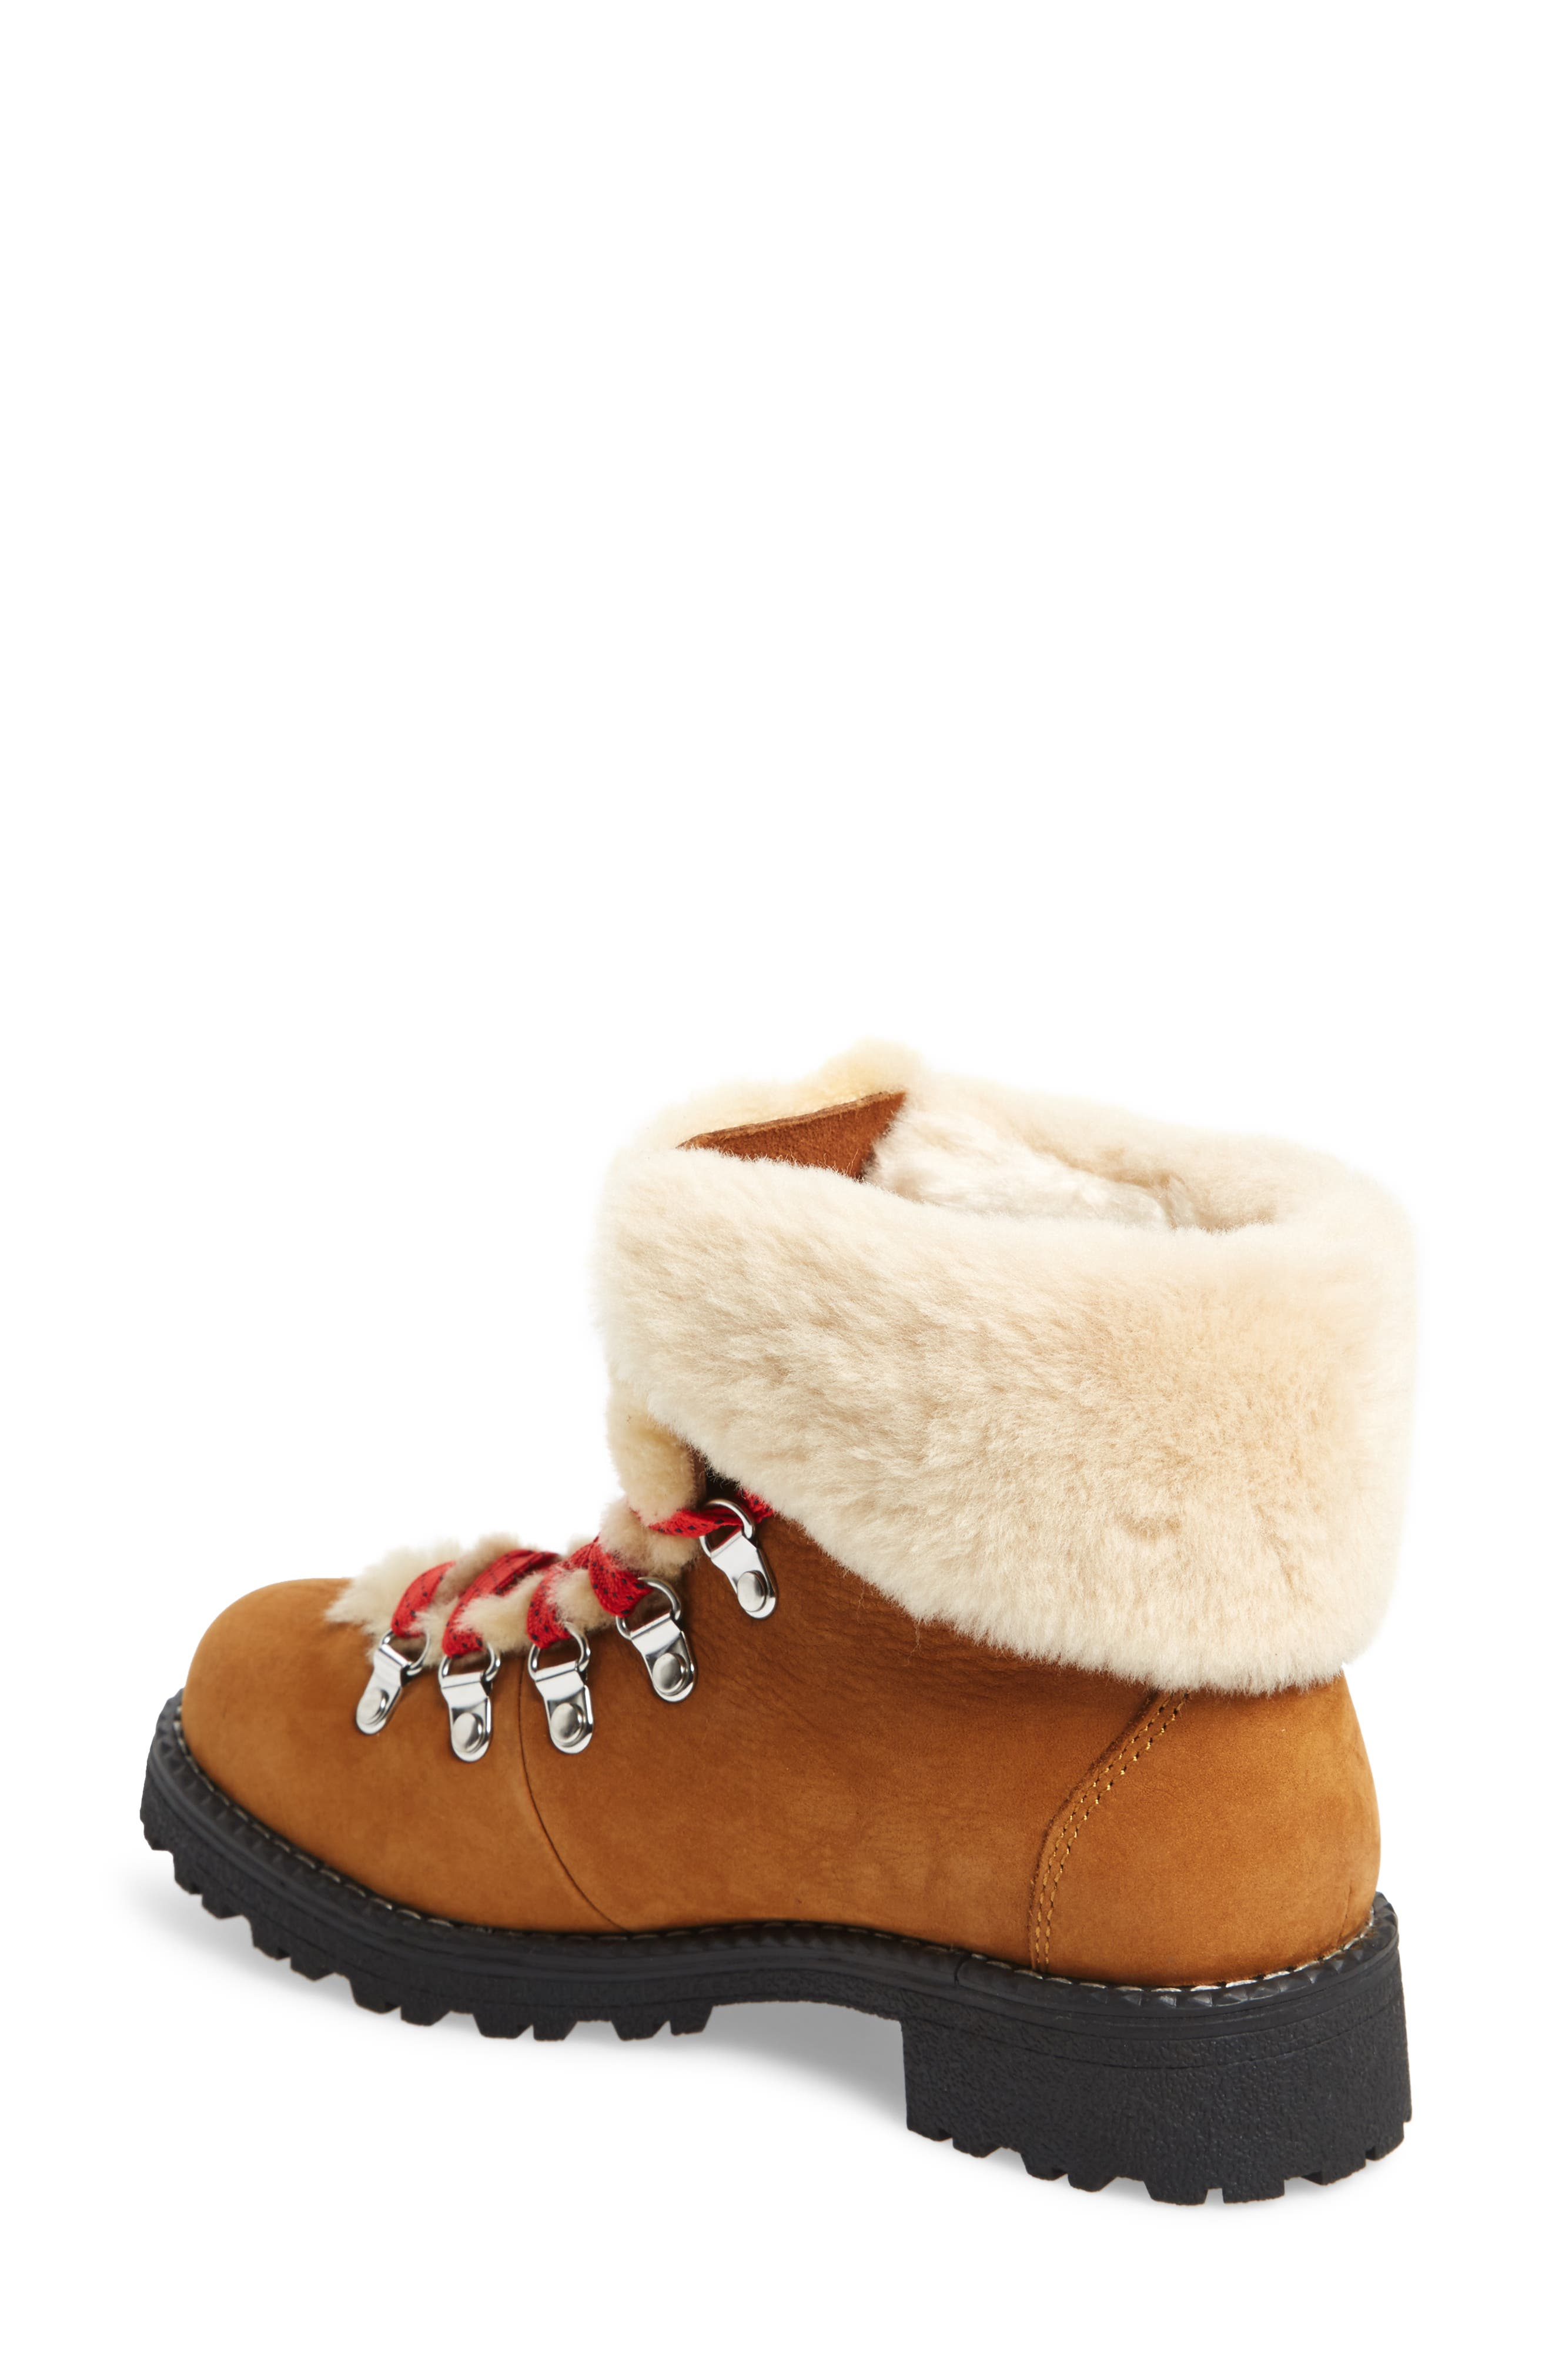 J.CREW, Nordic Genuine Shearling Cuff Winter Boot, Alternate thumbnail 2, color, GLAZED PECAN LEATHER